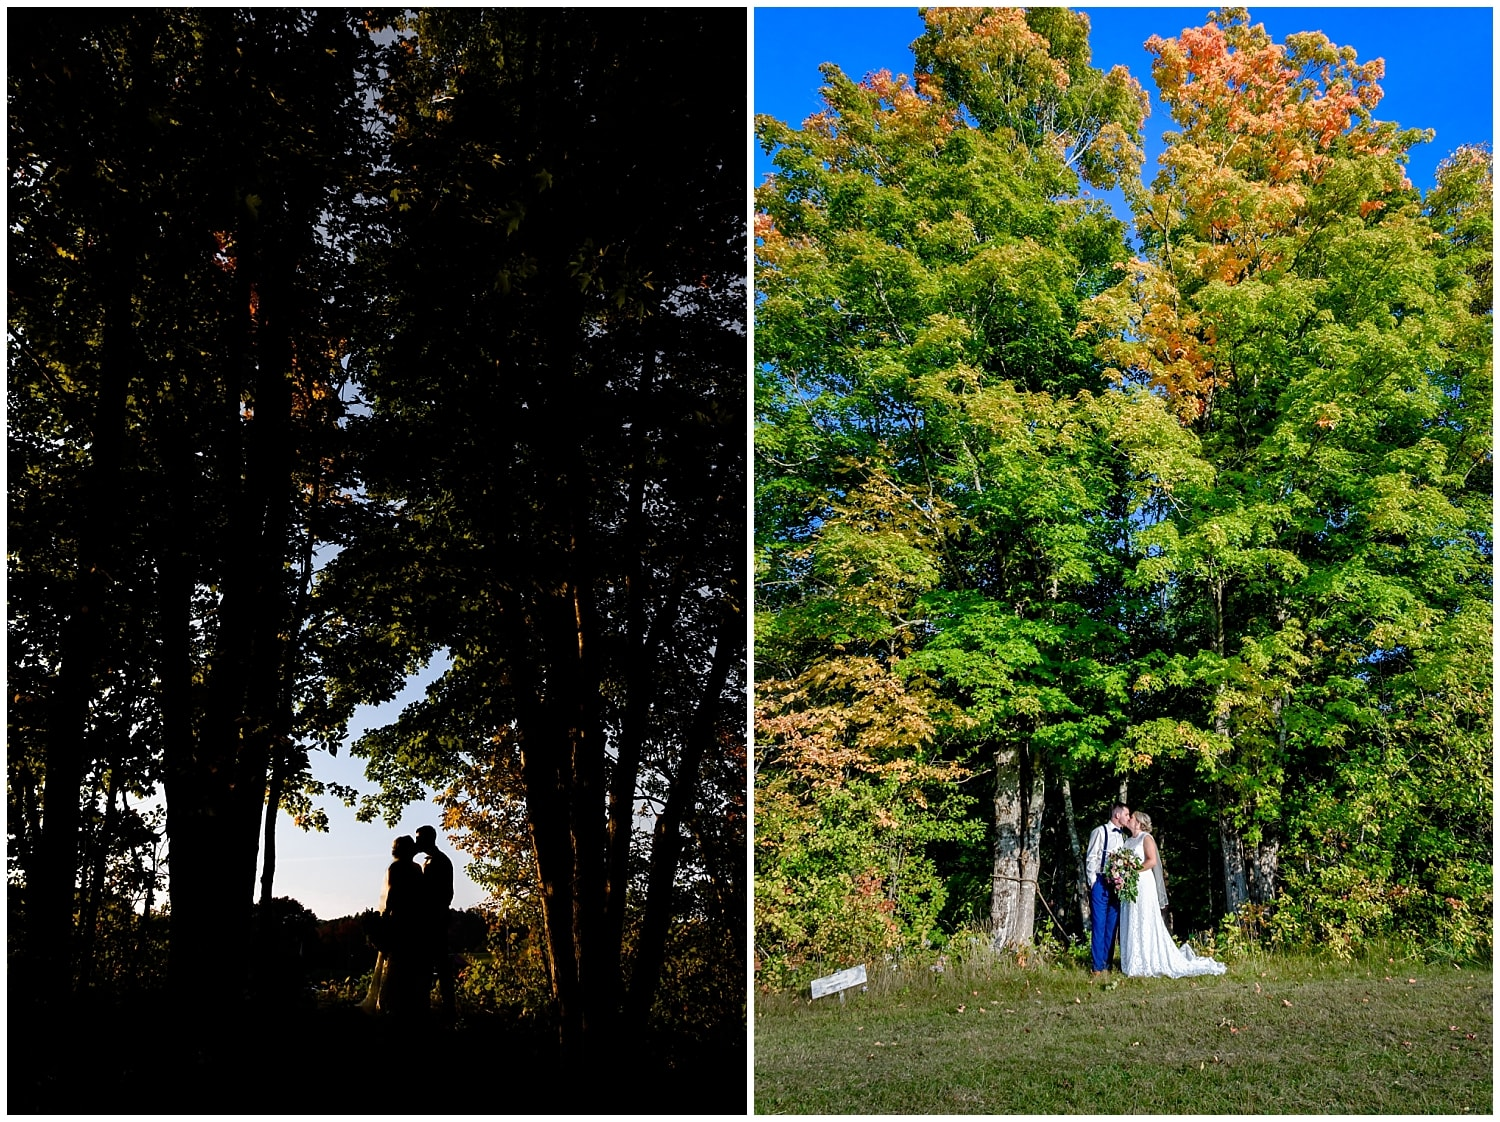 The bride and groom pose for their wedding photos near massive trees at the Barn at Sadie Belle Farms in Hantsport NS.